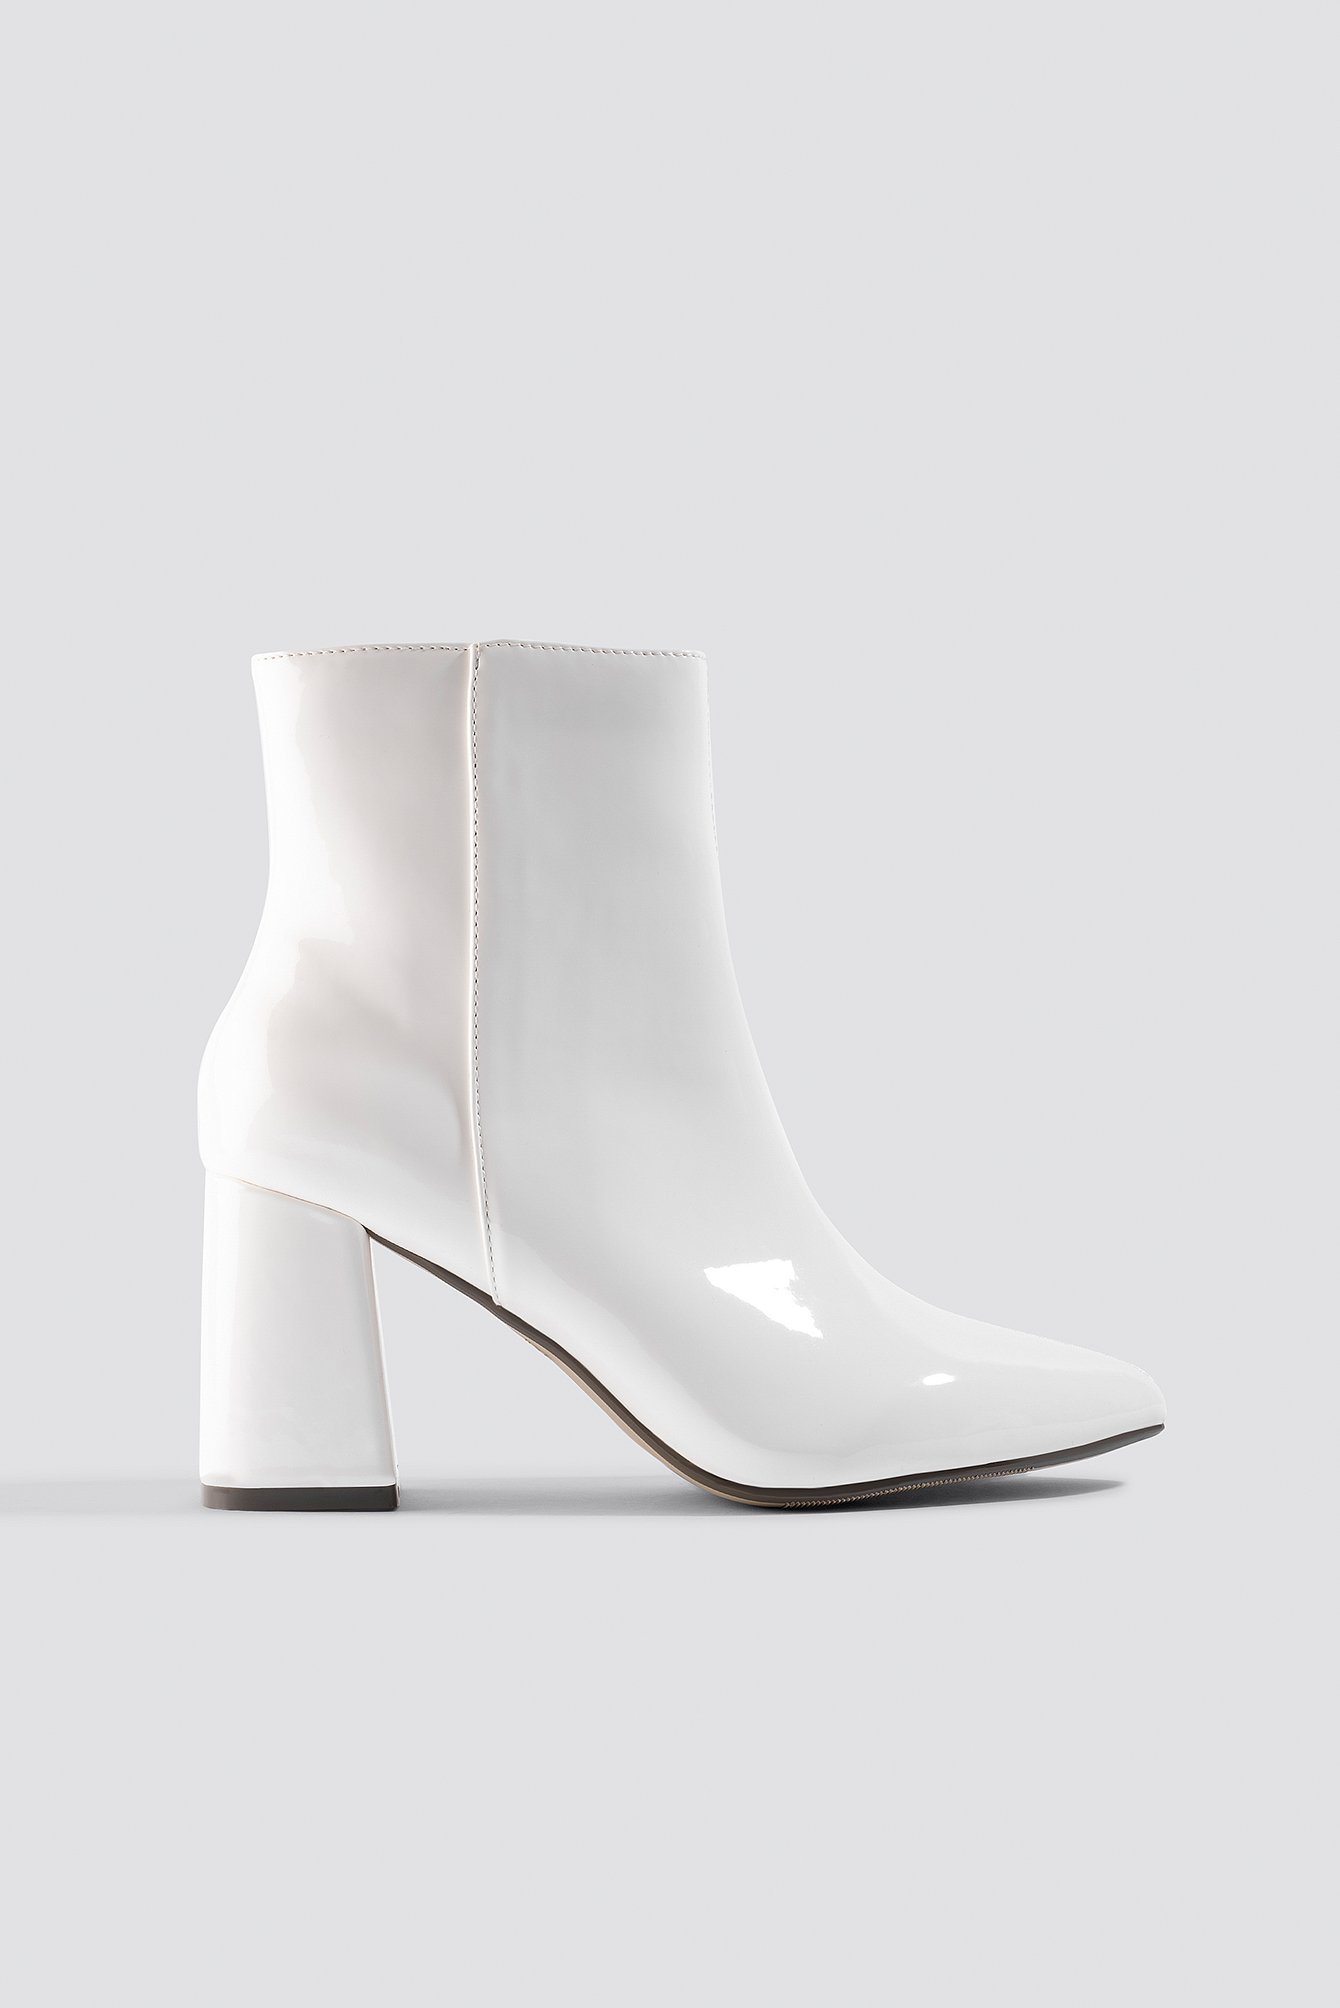 na-kd shoes -  Glossy Patent Boots - White